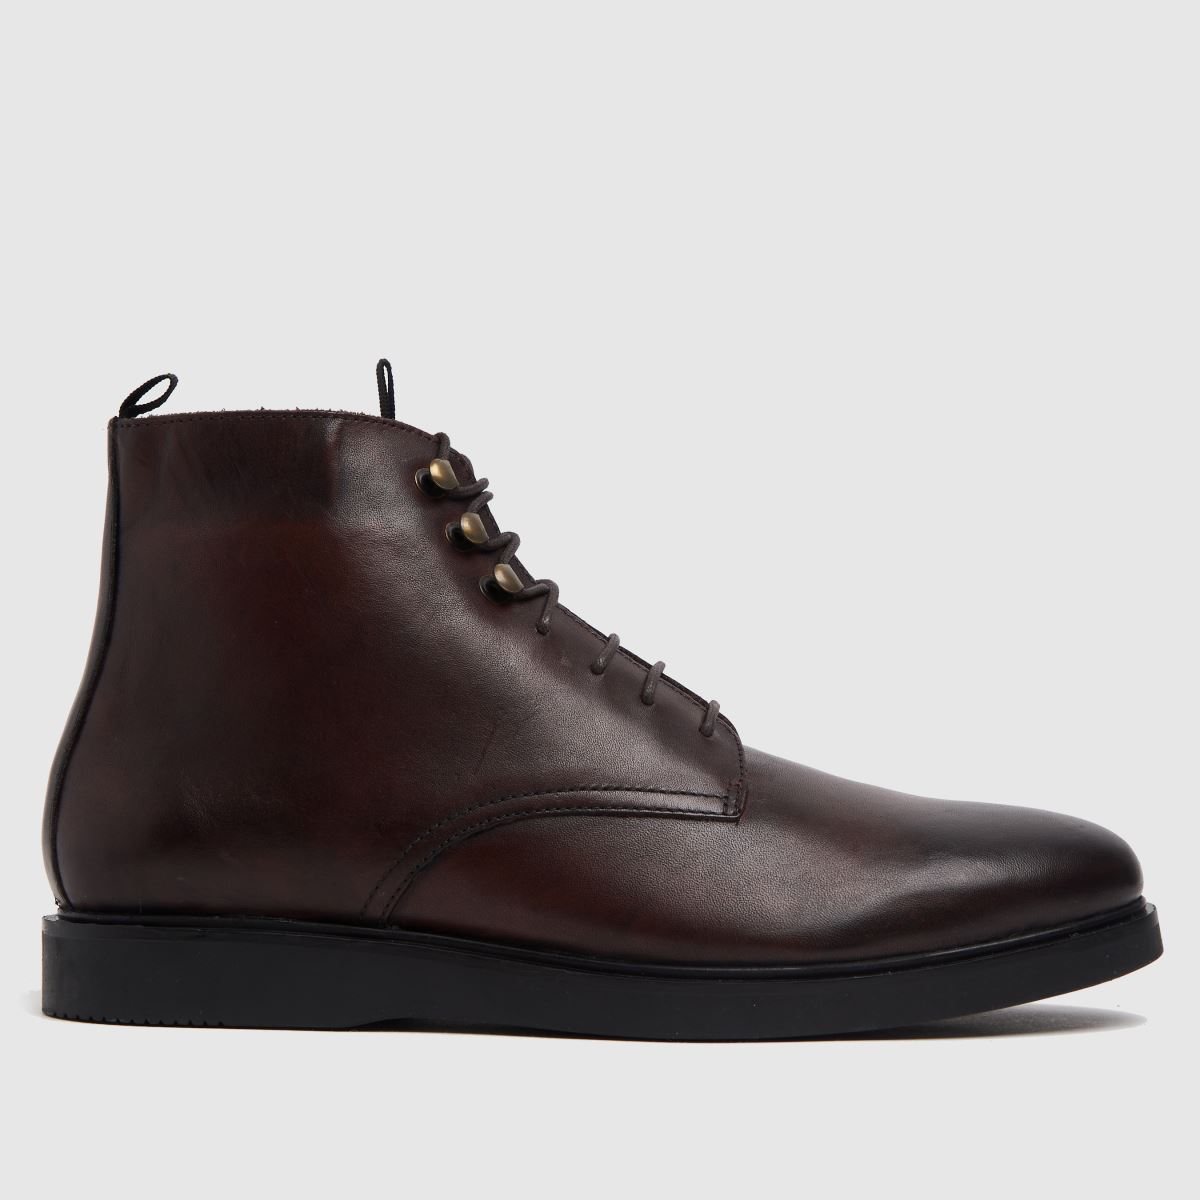 H BY HUDSON Brown Battle Boots